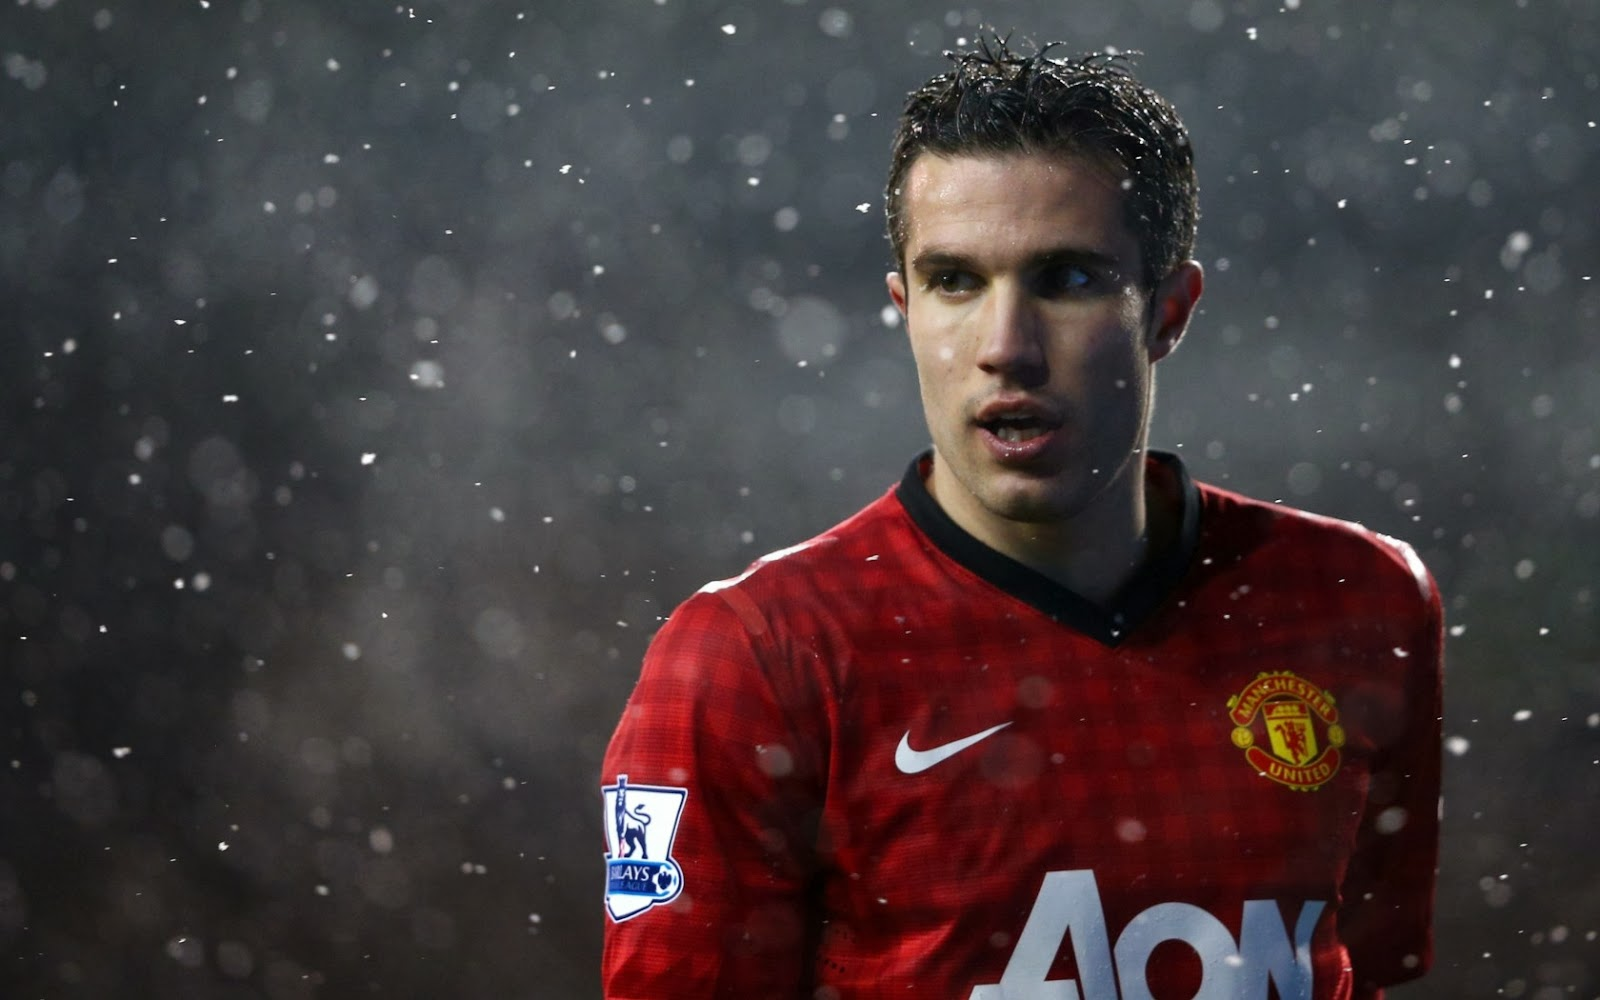 An Open Letter To Robin Van Persie From An Arsenal Fan Reminding